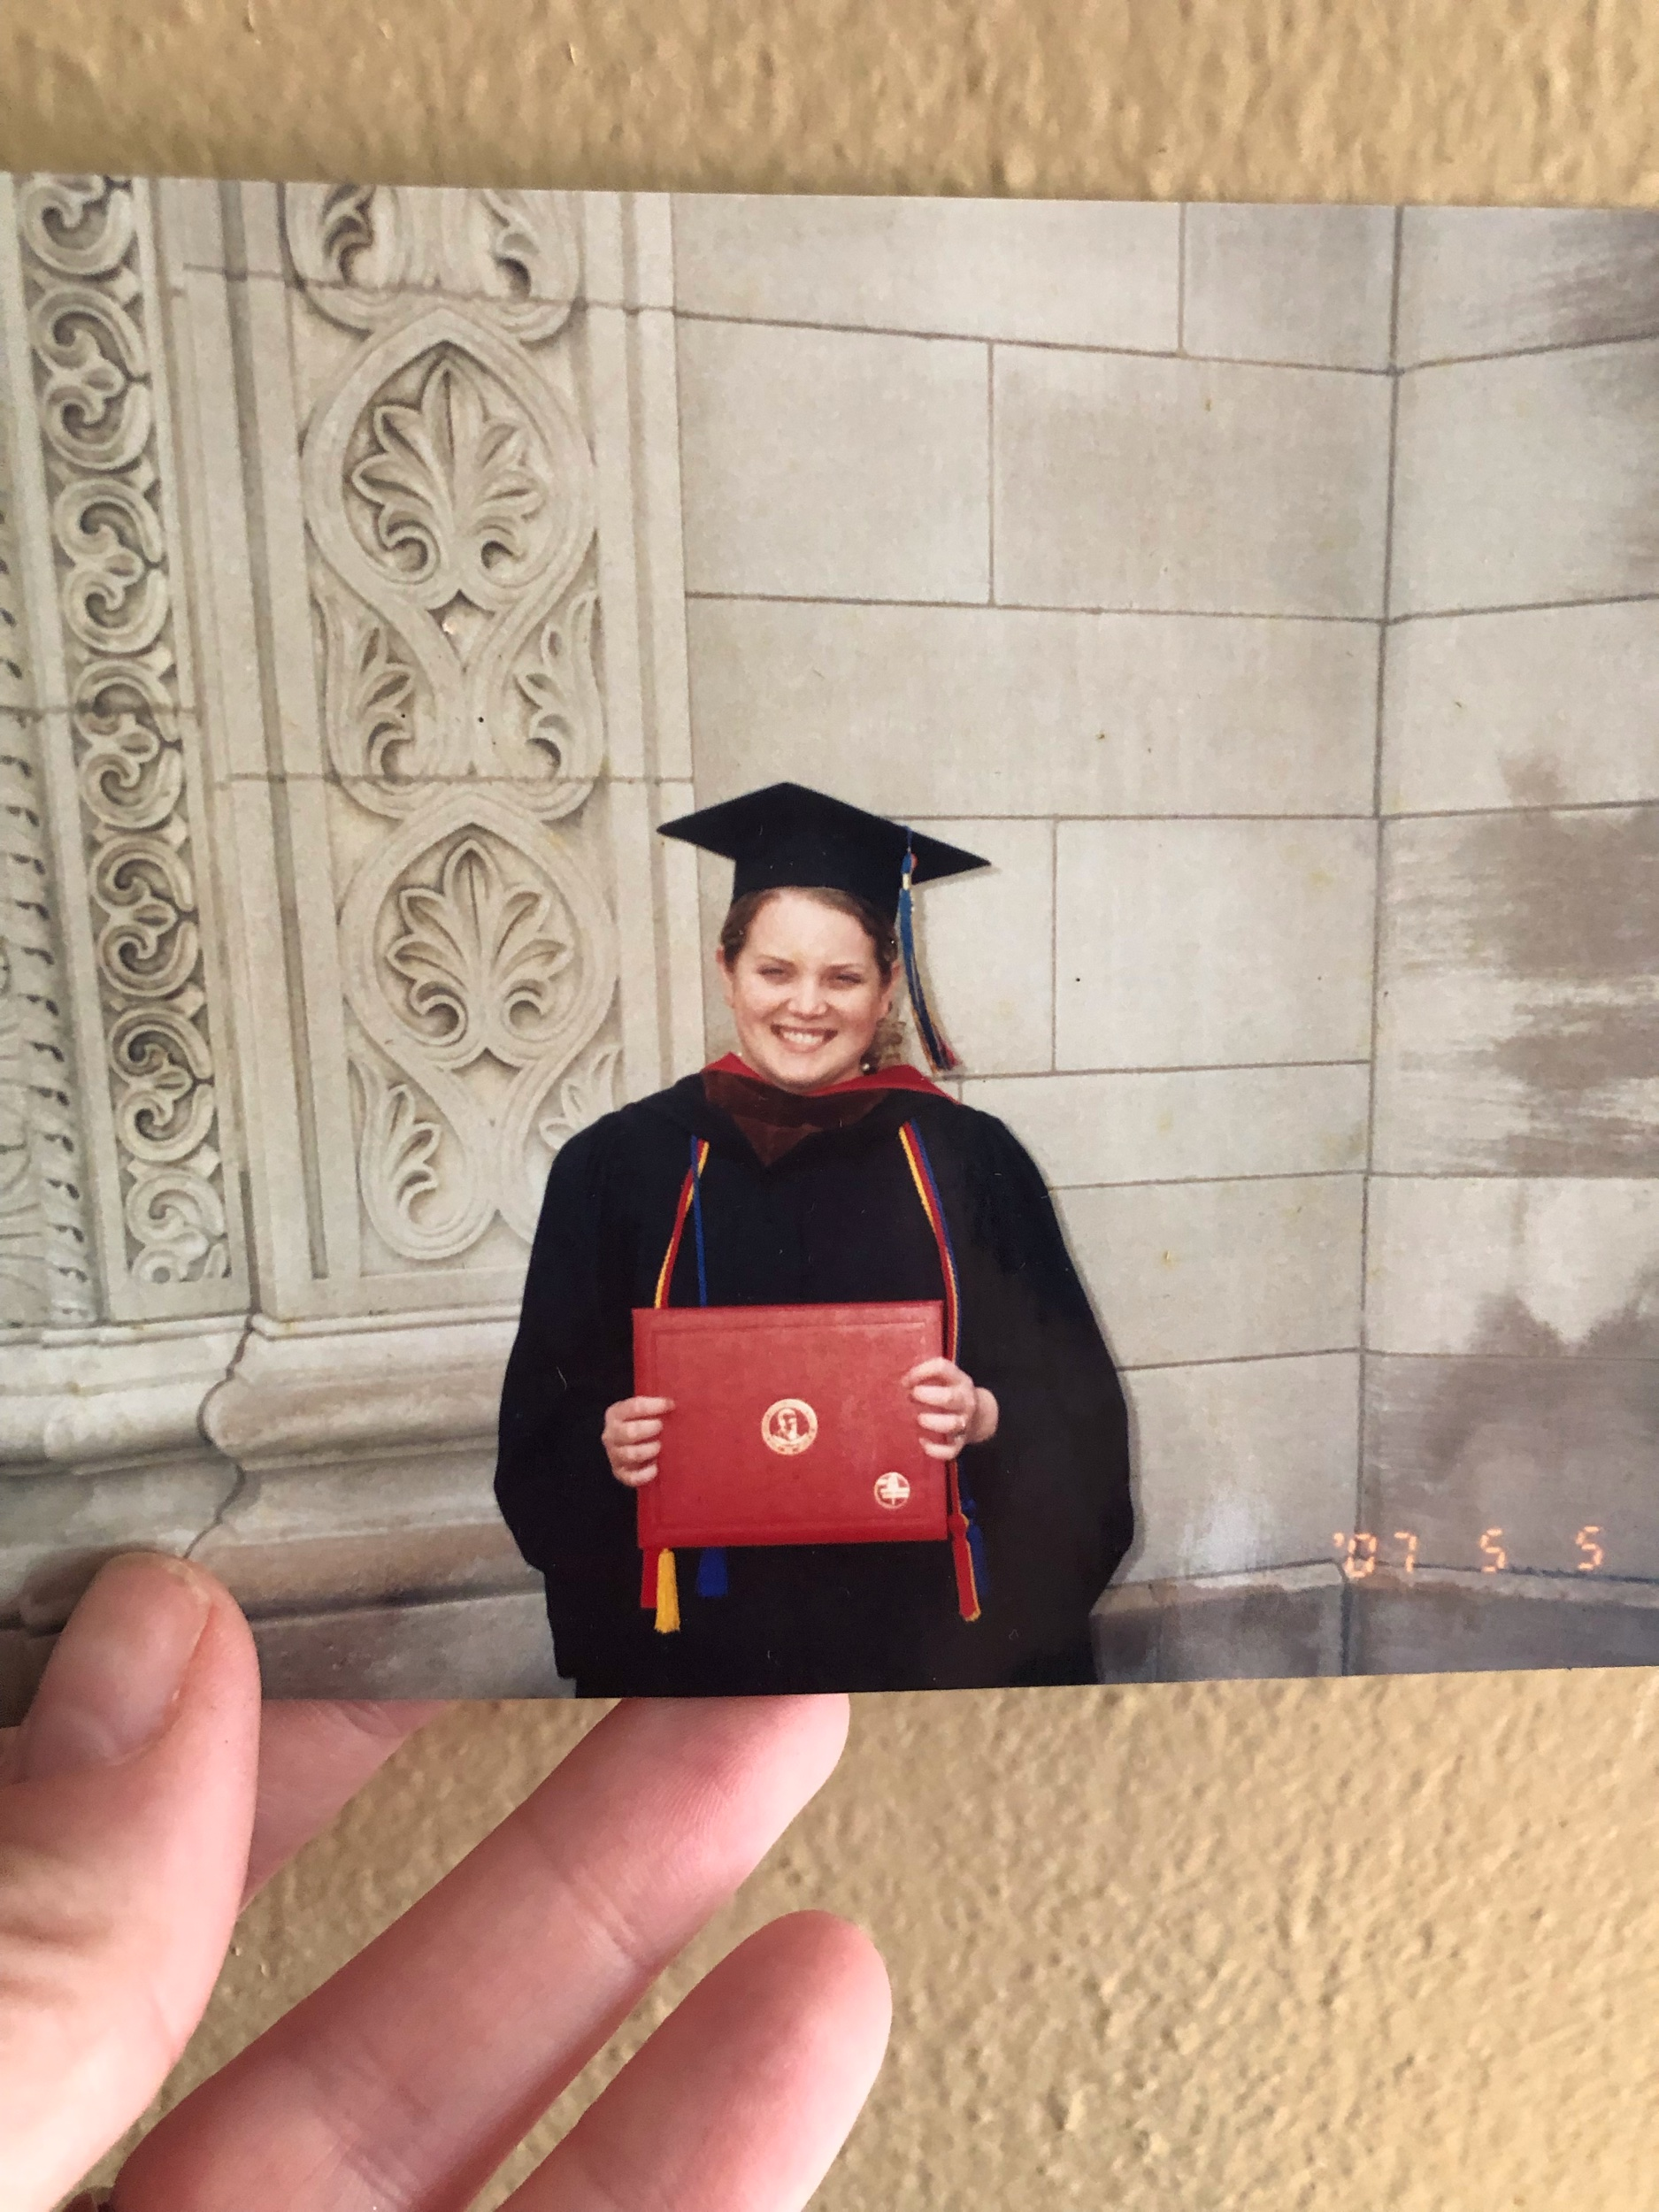 May 5, 2007 Graduating from Kendall College in Grand Rapids, MI.